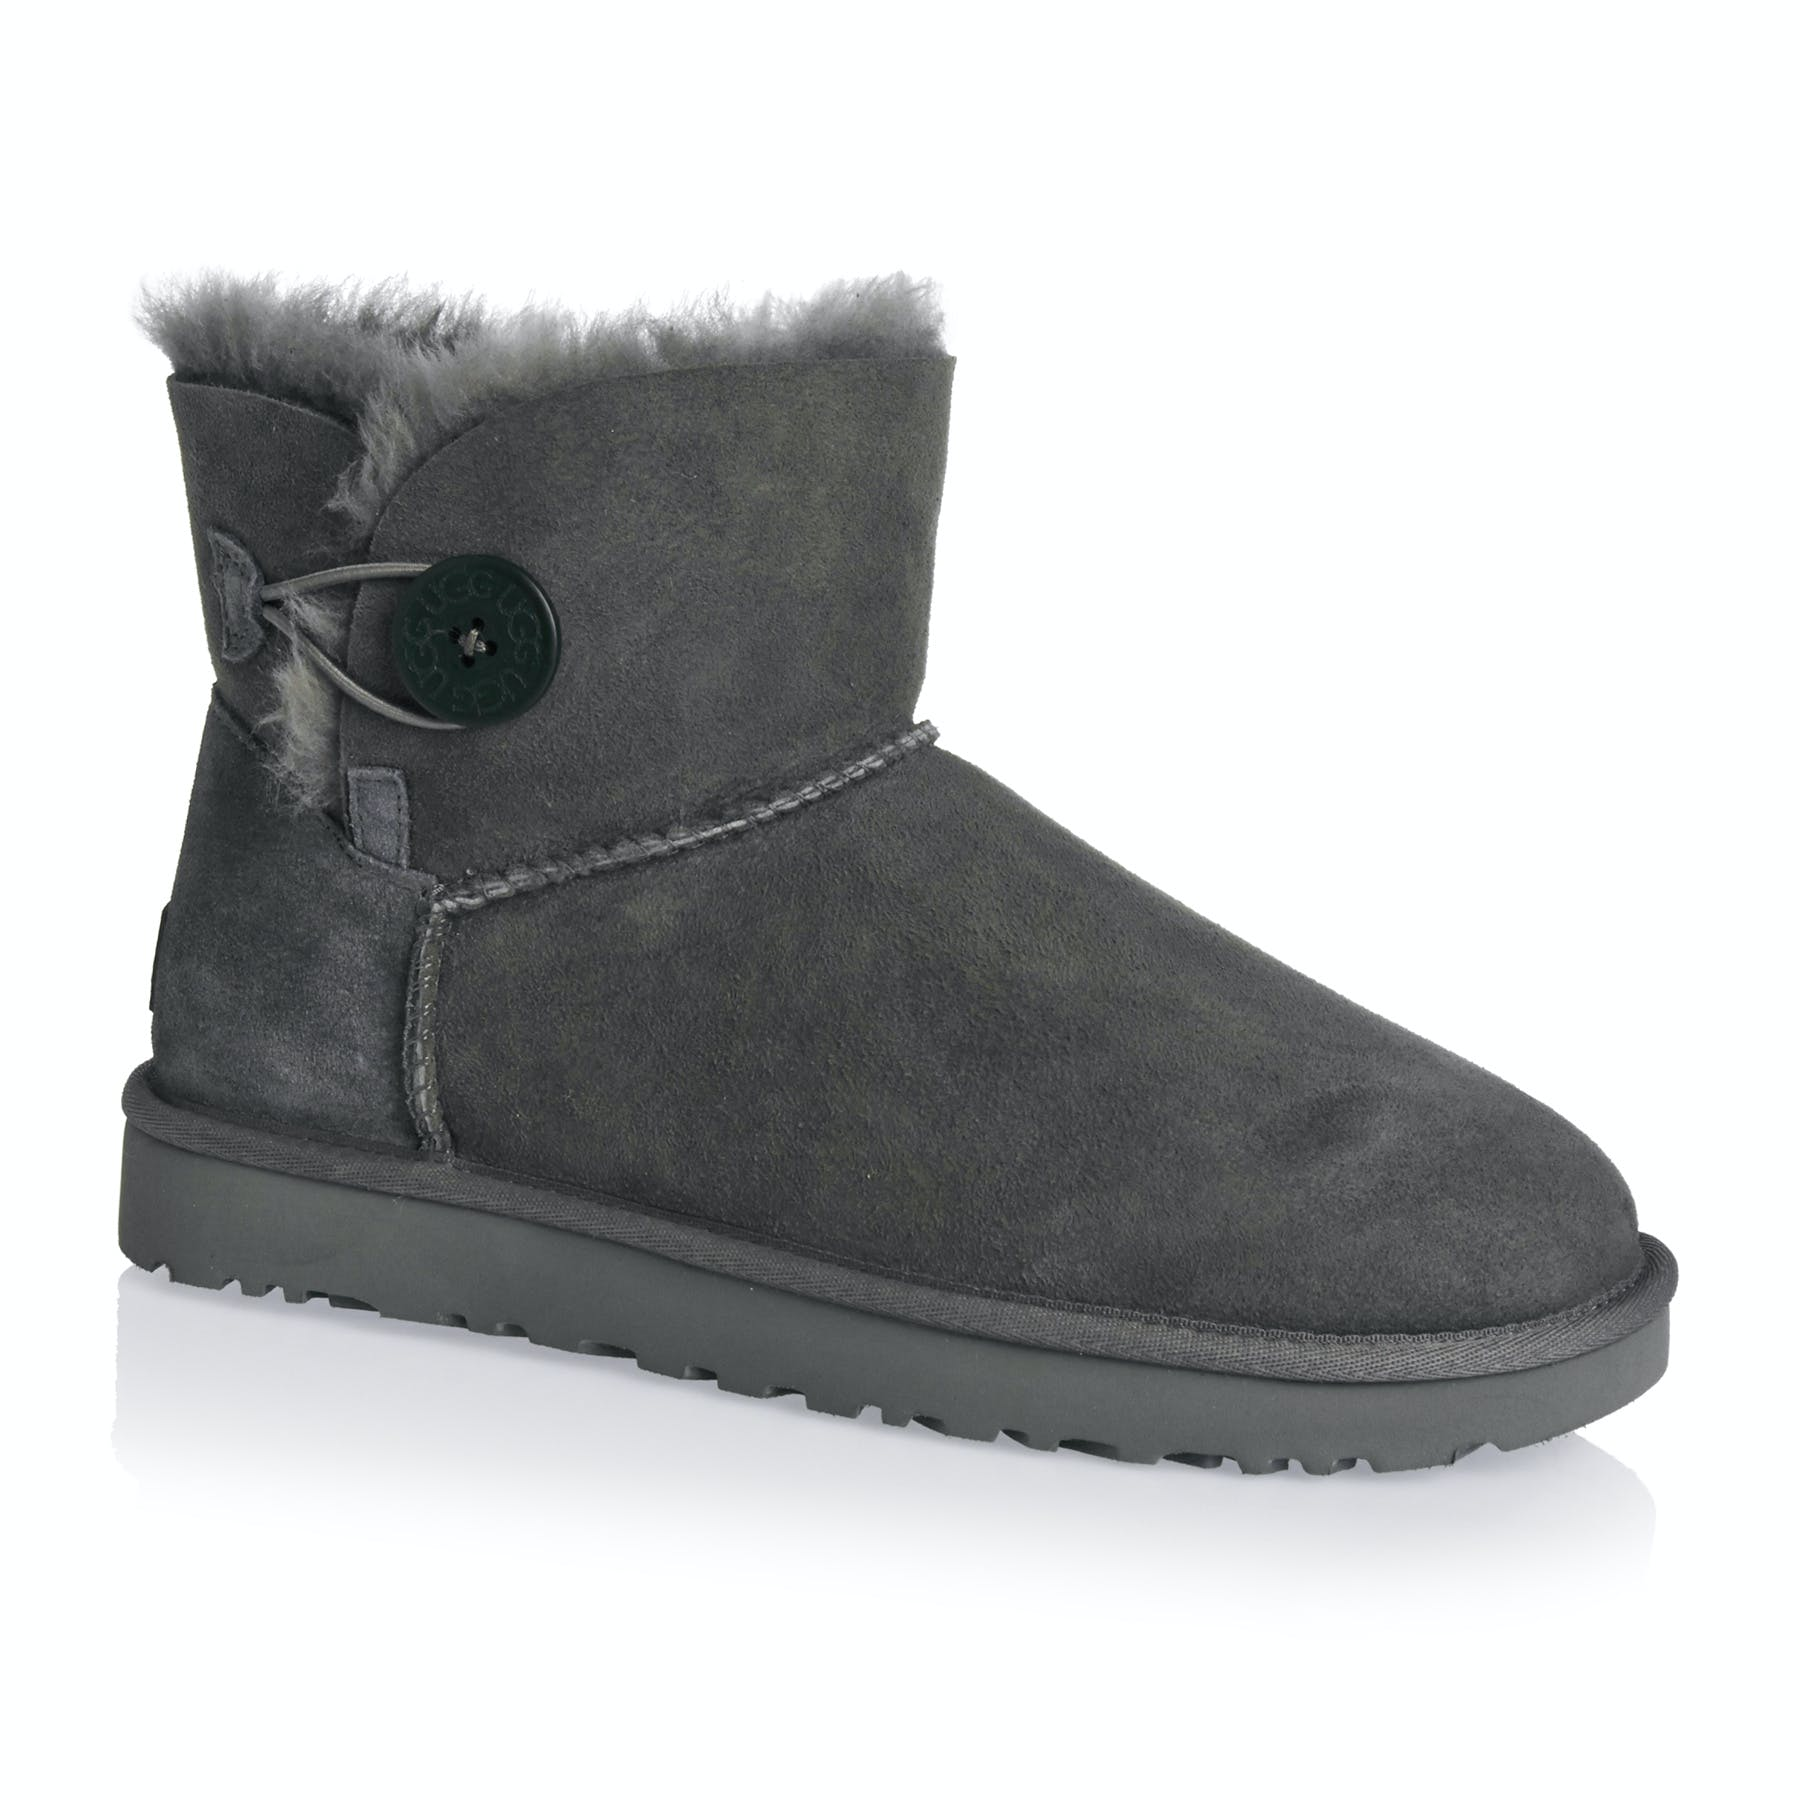 657e380e880 UGG Mini Bailey Button II Womens Boots - Free Delivery options on All  Orders from Surfdome